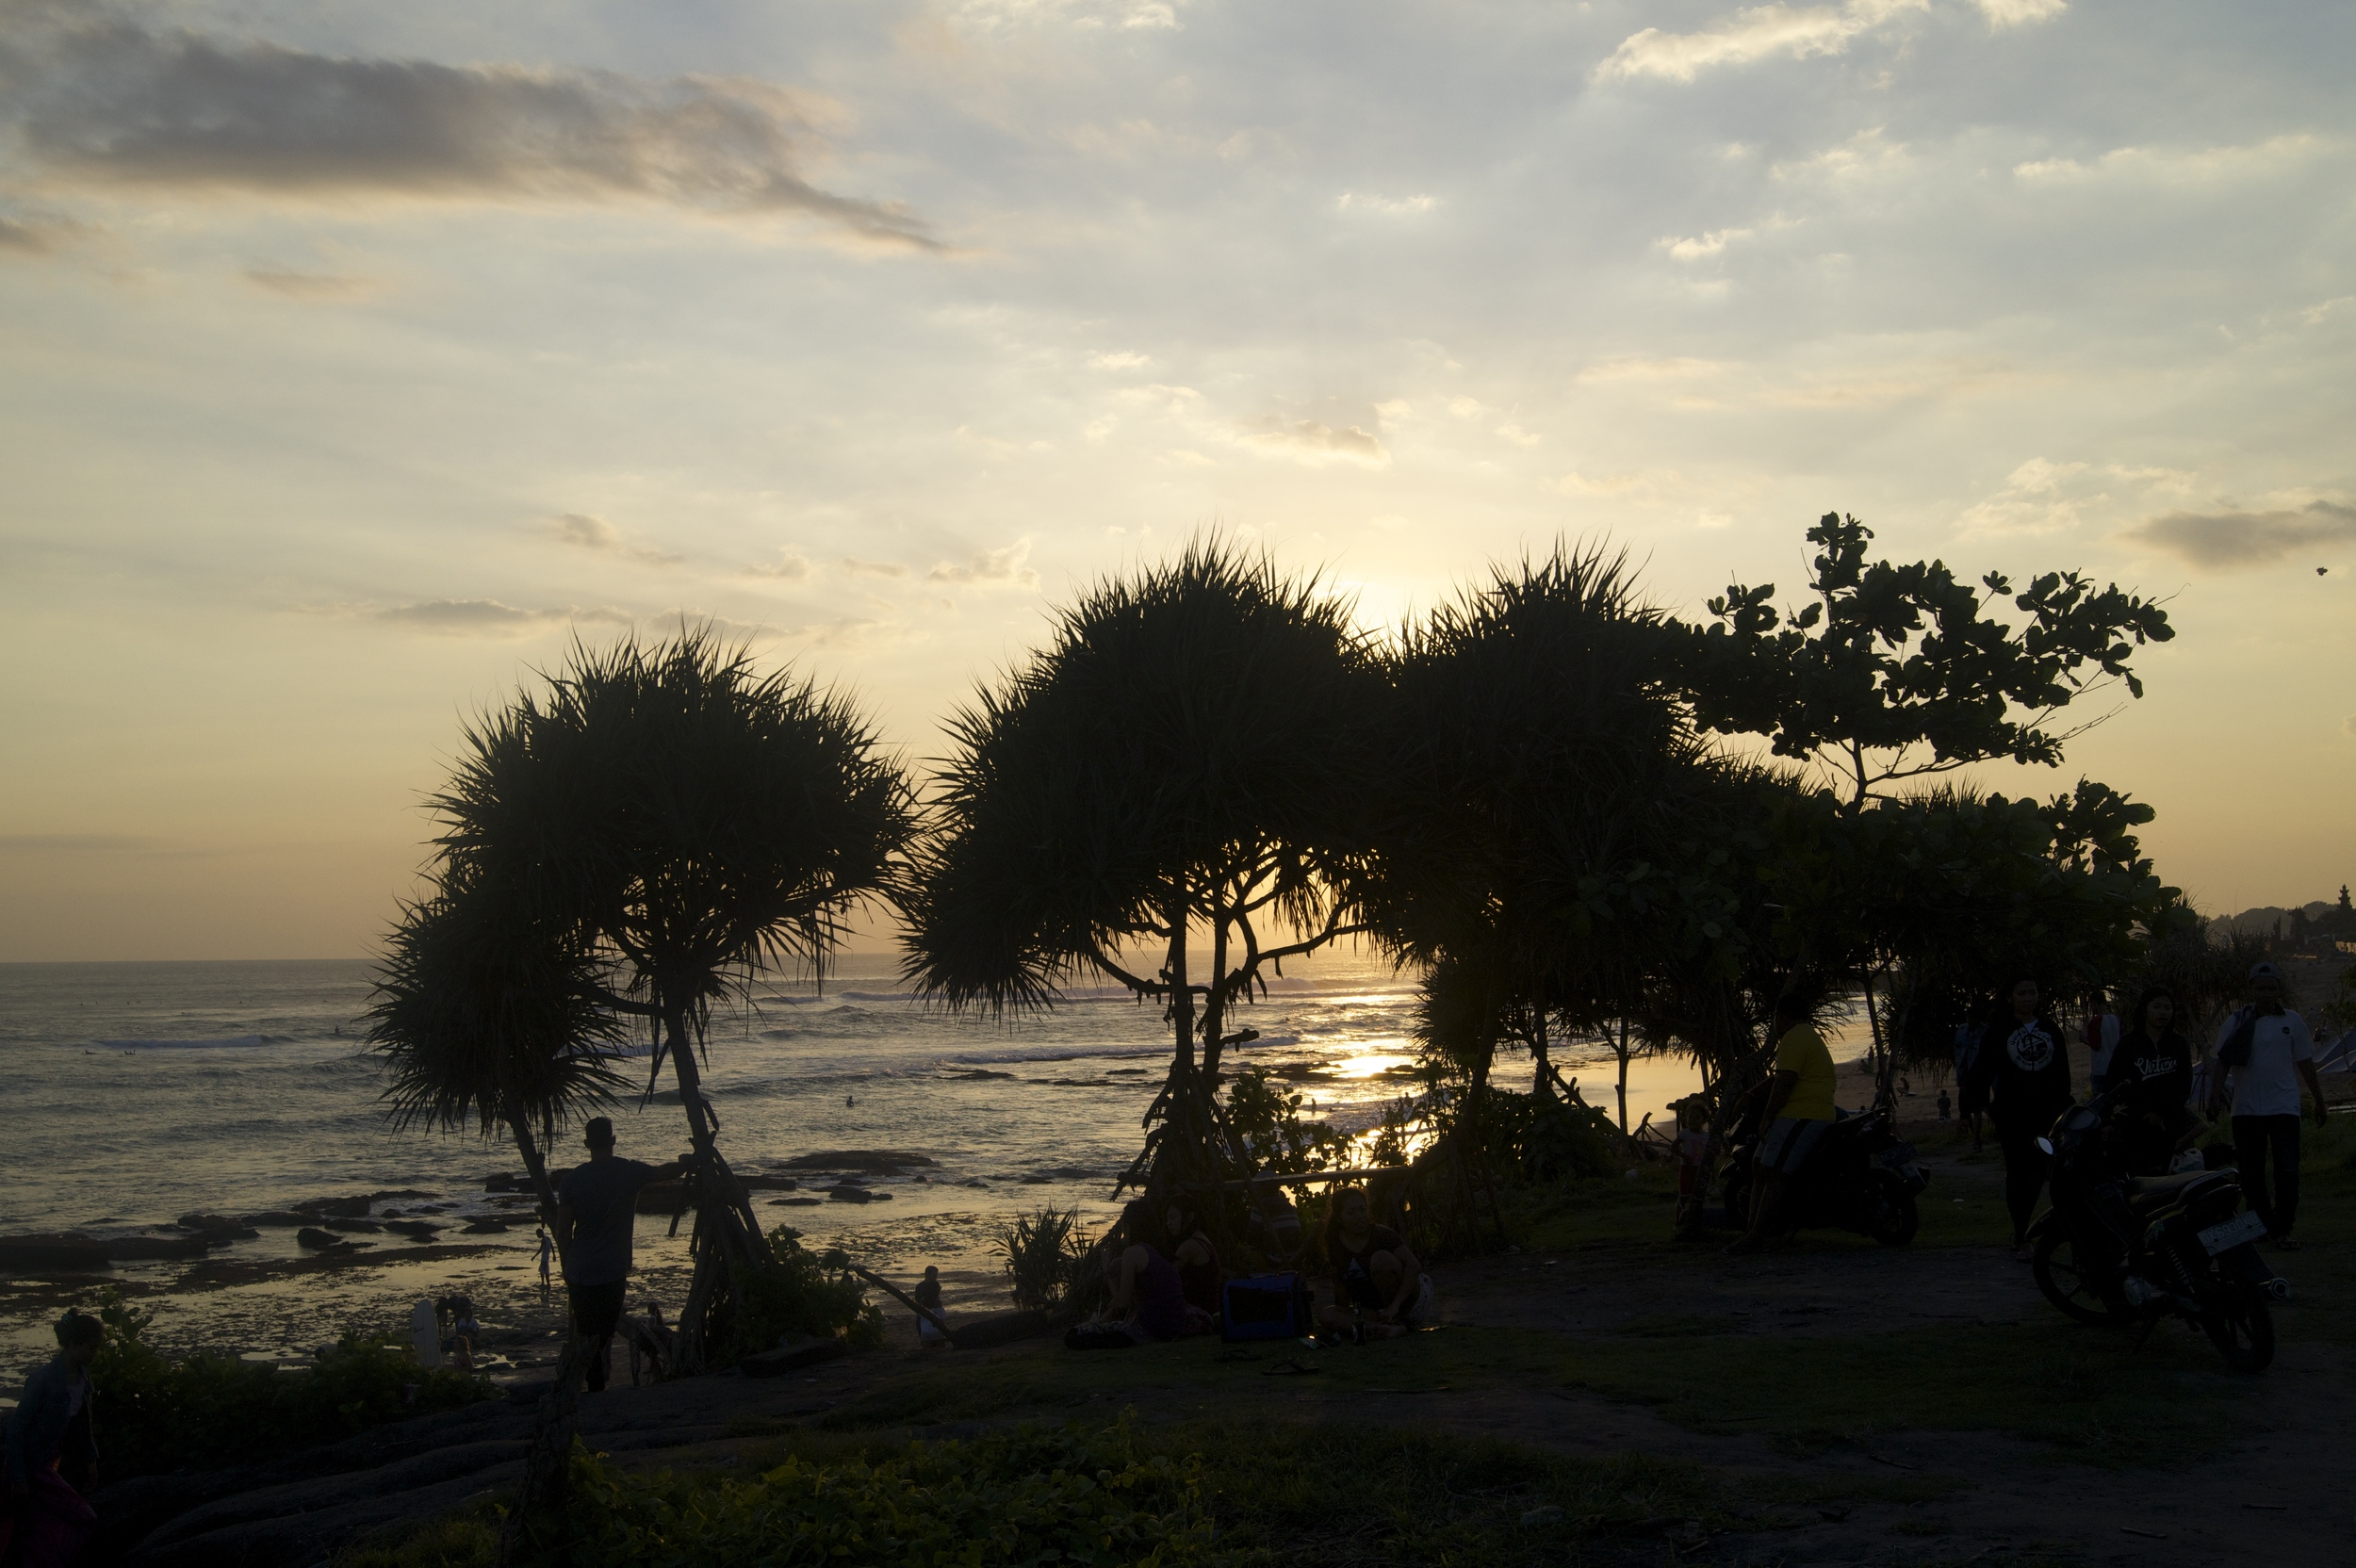 Stunner sunset from Canggu's Old Man's Beach. About a 25 minute walk or 10 minute scooter ride from CangguSTAY!